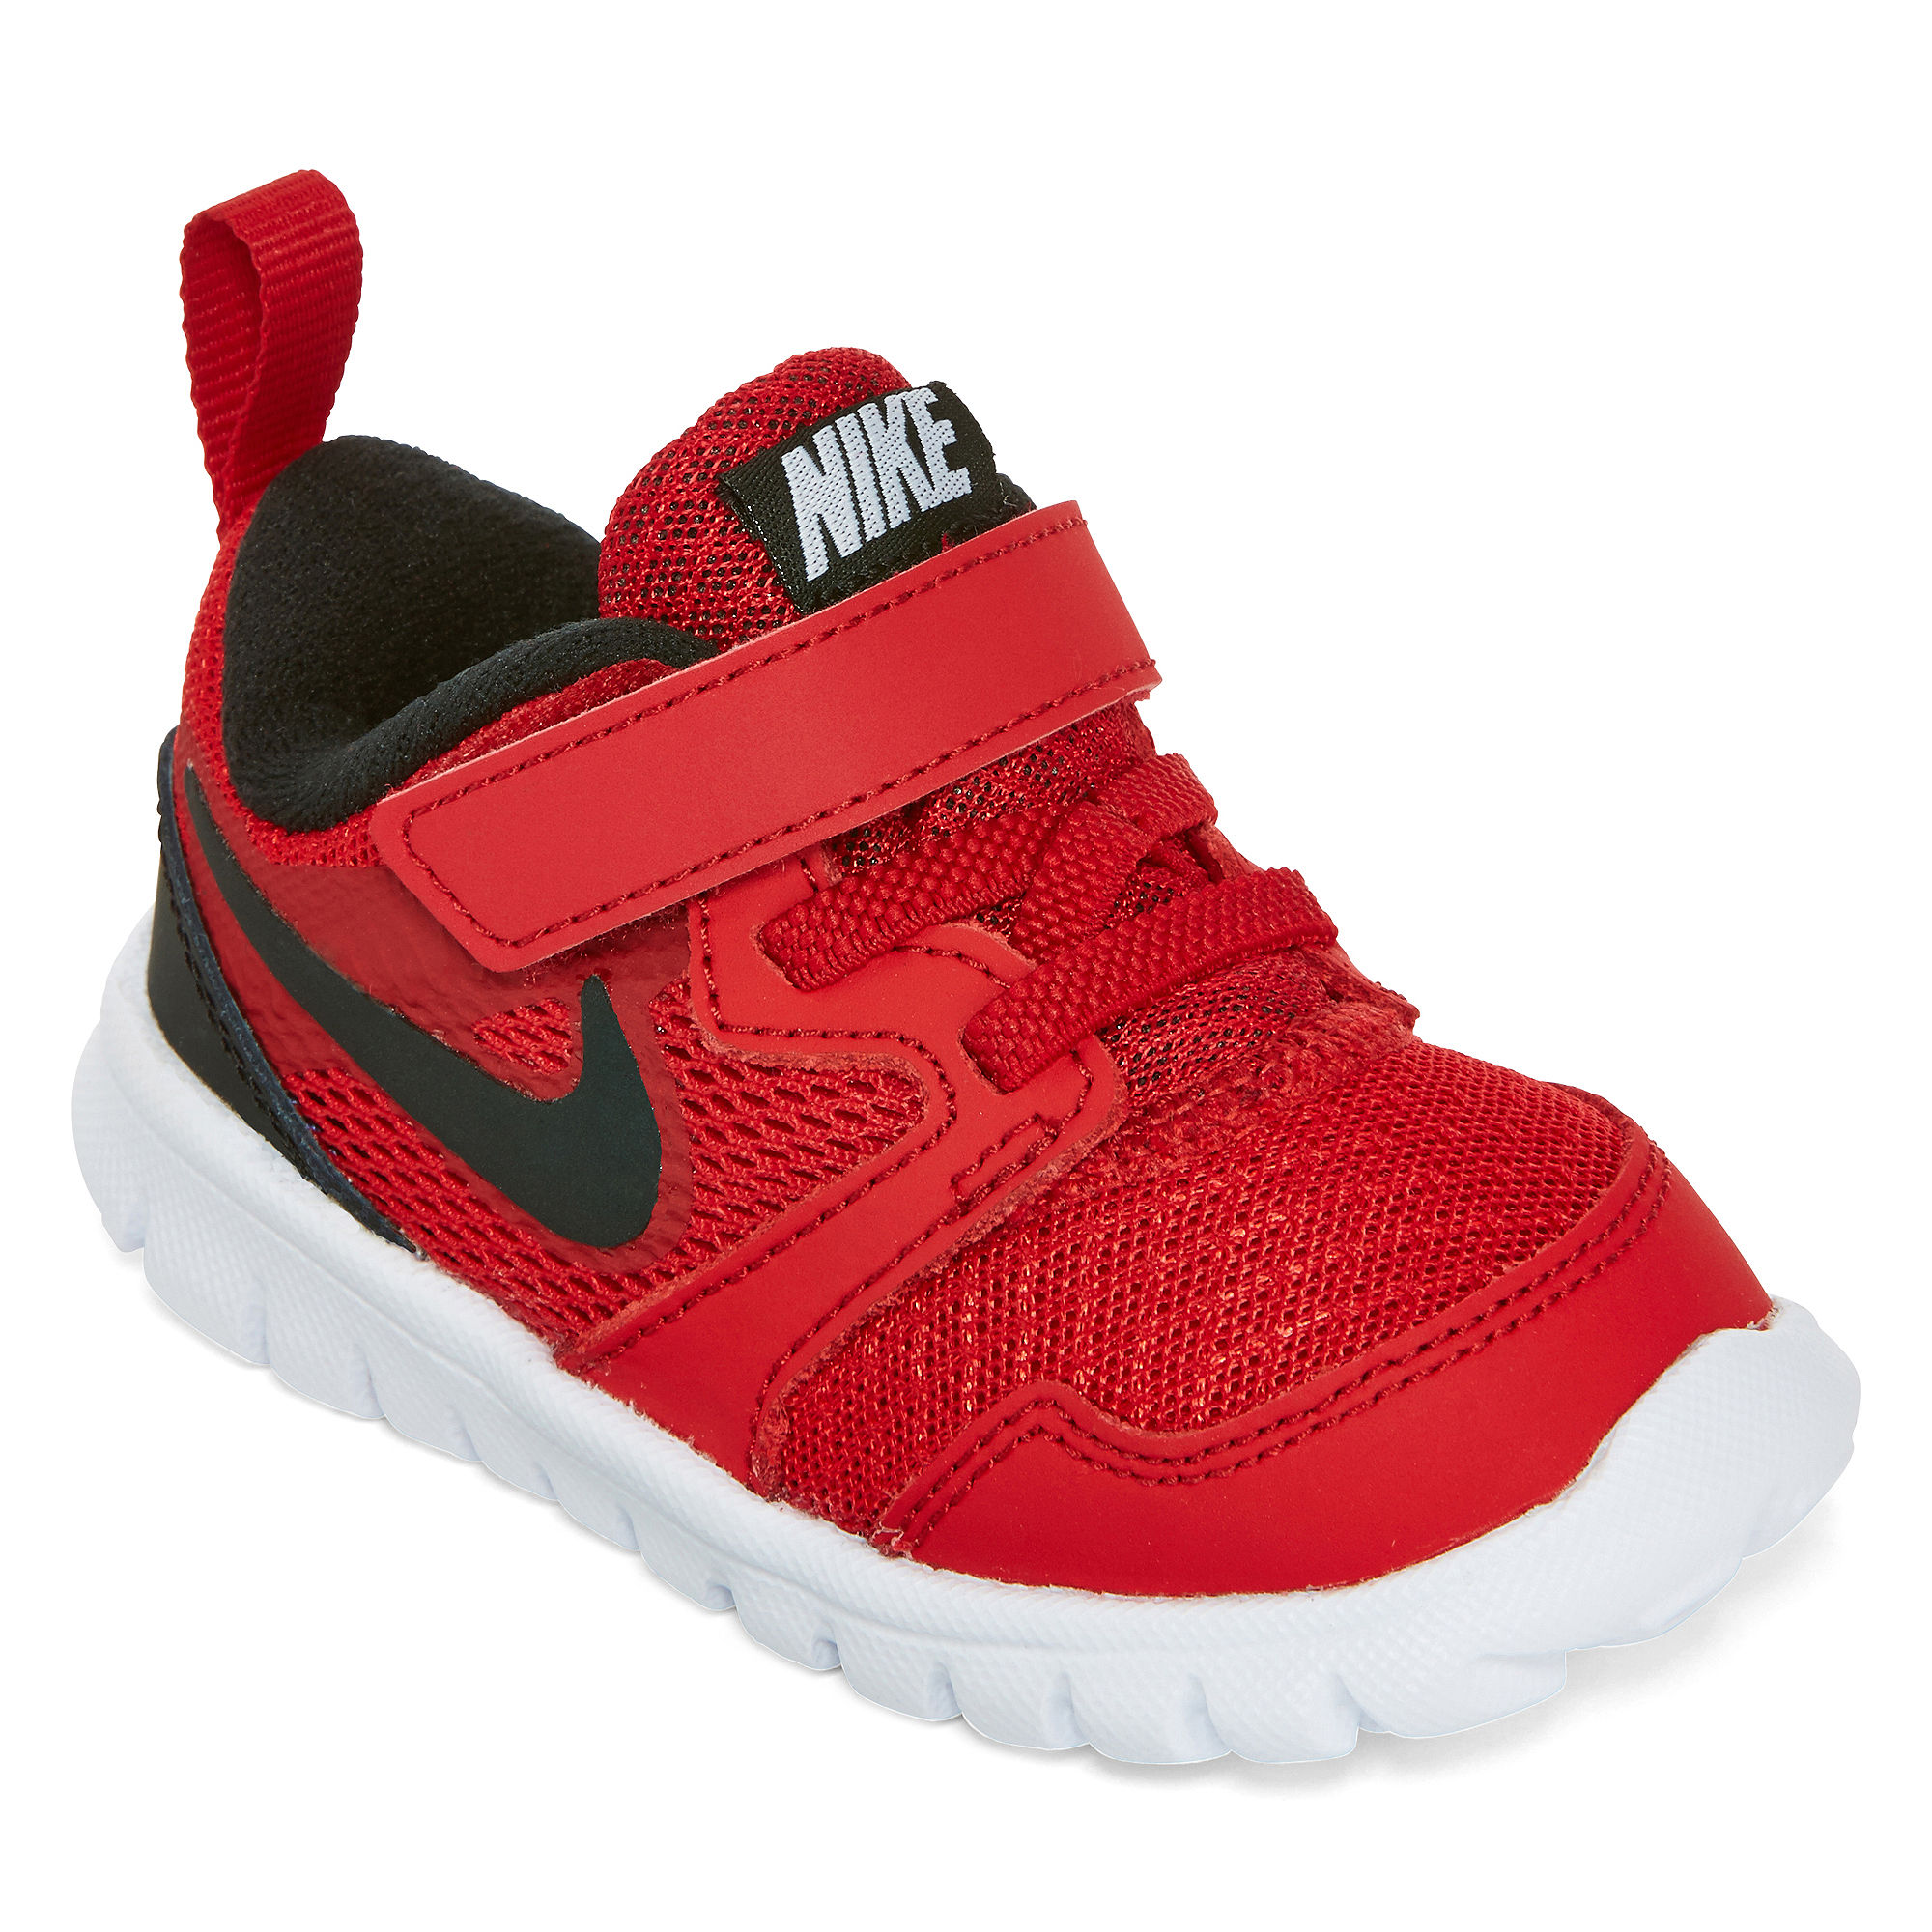 cca209e64f2fd UPC 886059956624. ZOOM. UPC 886059956624 has following Product Name  Variations  Nike Kids - Flex Experience 3 ...